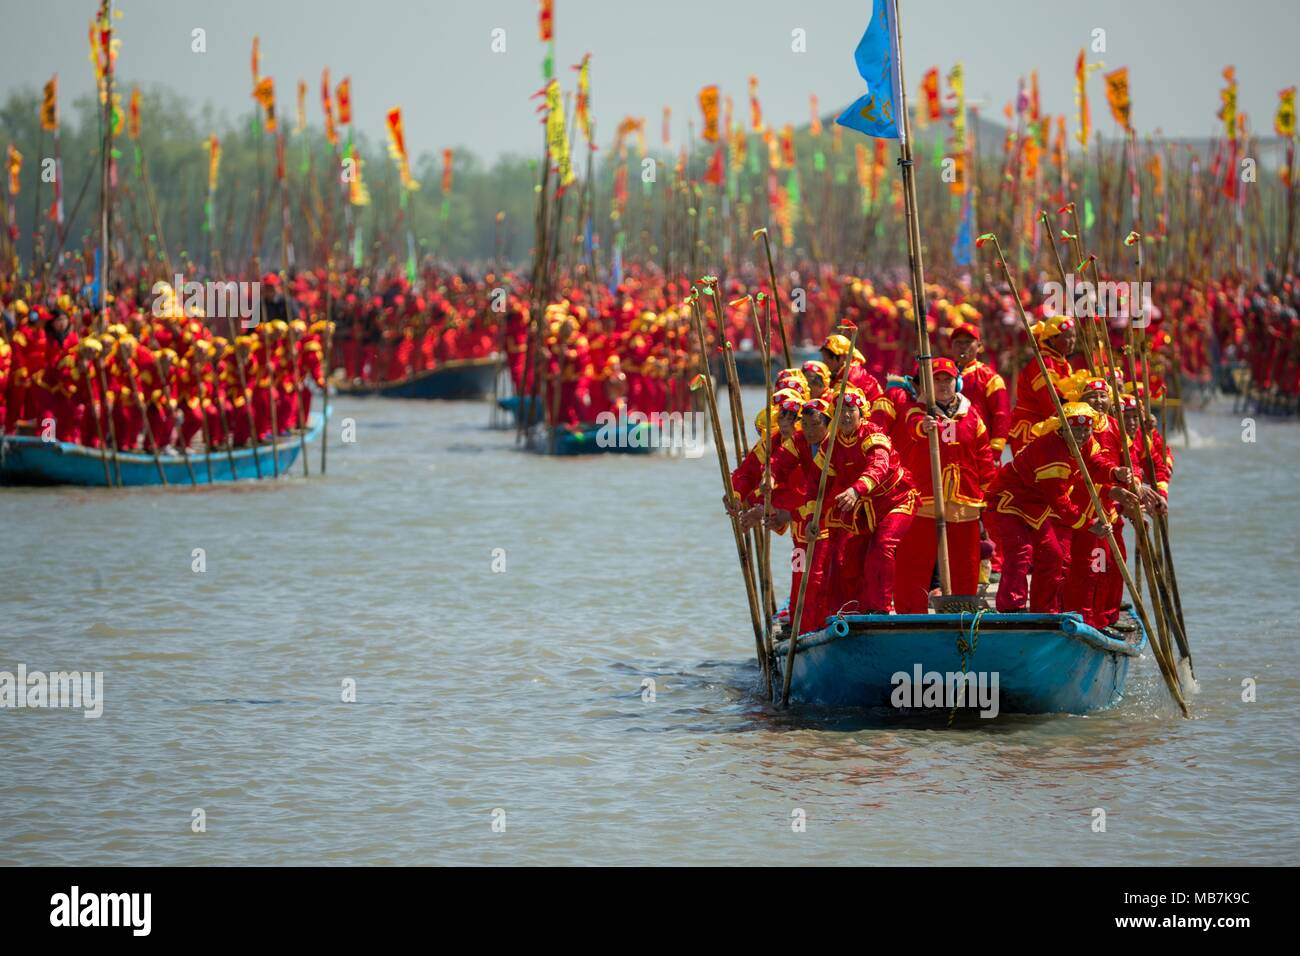 Taizhou, China's Jiangsu Province. 8th Apr, 2018. Boat team members attend the Qintong Boat Festival in Taizhou, east China's Jiangsu Province, April 8, 2018. The Qintong Boat Festival in Taizhou originated in China's Southern Song Dynasty (1127-1279 A.D.) as a ceremony to commemorate war victims around the Qingming Festival. Nowadays, this tradition is well preserved and promoted, offering spectators a view of the gathering of hundreds of boats. Credit: Tang Dehong/Xinhua/Alamy Live News - Stock Image